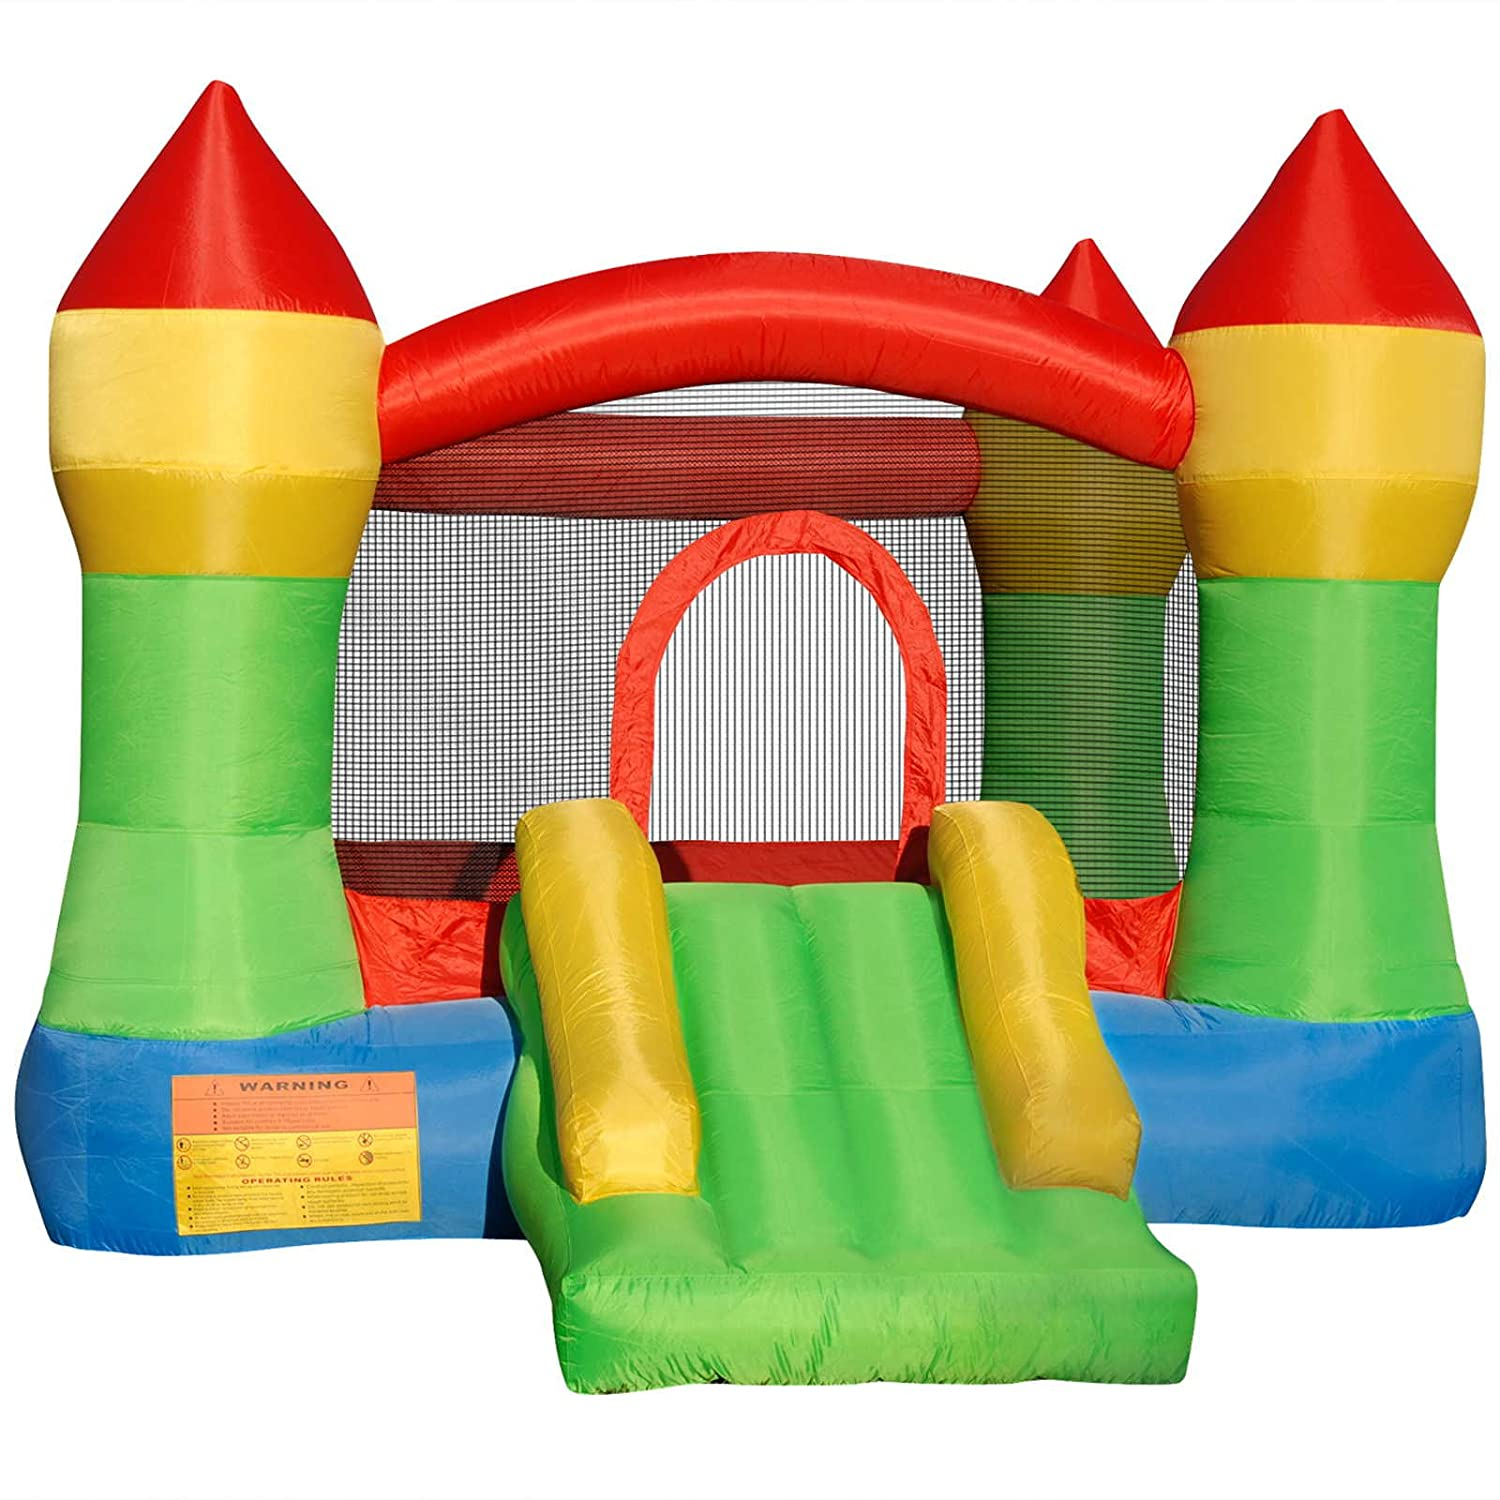 50 Best & Safest Bouncy Houses of 2019 | Safety com